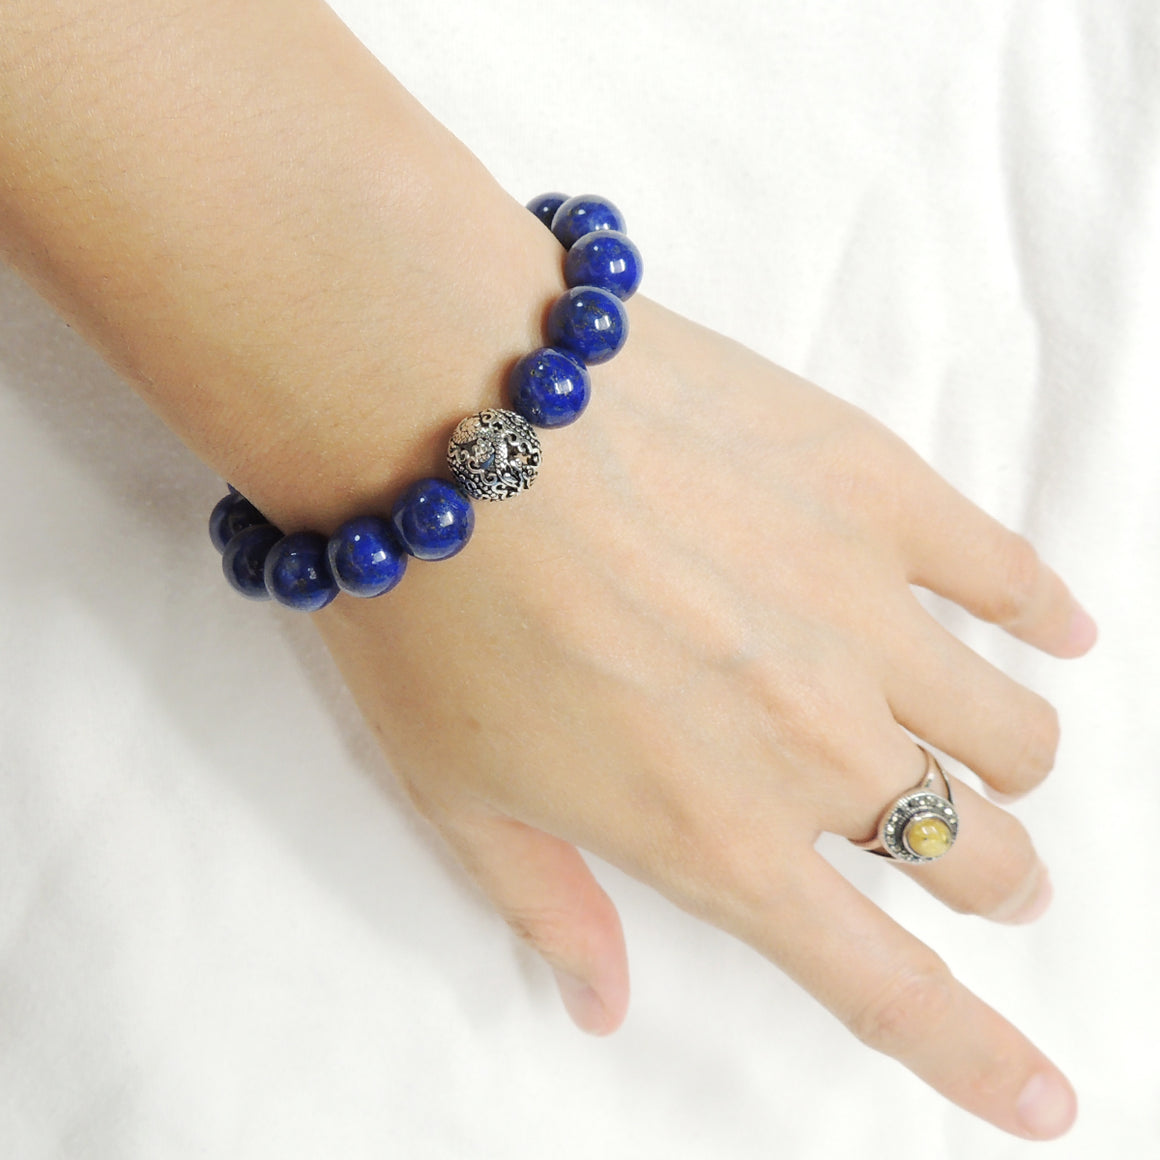 Healing Lapis Lazuli Semiprecious Gemstones, Elegantly Carved Dragon Bead, Handmade adjustable bracelet, Symbol of protection, courage, tranquility, strength, love, spirituality, Gemstone jewelry for All Genders, Prayer, Healing, Yoga, Use with Chakra Meditation to increase your energy flow – durable black cords, adjustable braided drawstring, sterling silver S925, includes FREE Jewelry Bag, Sterling Silver Jewelry Cleaning Cloth